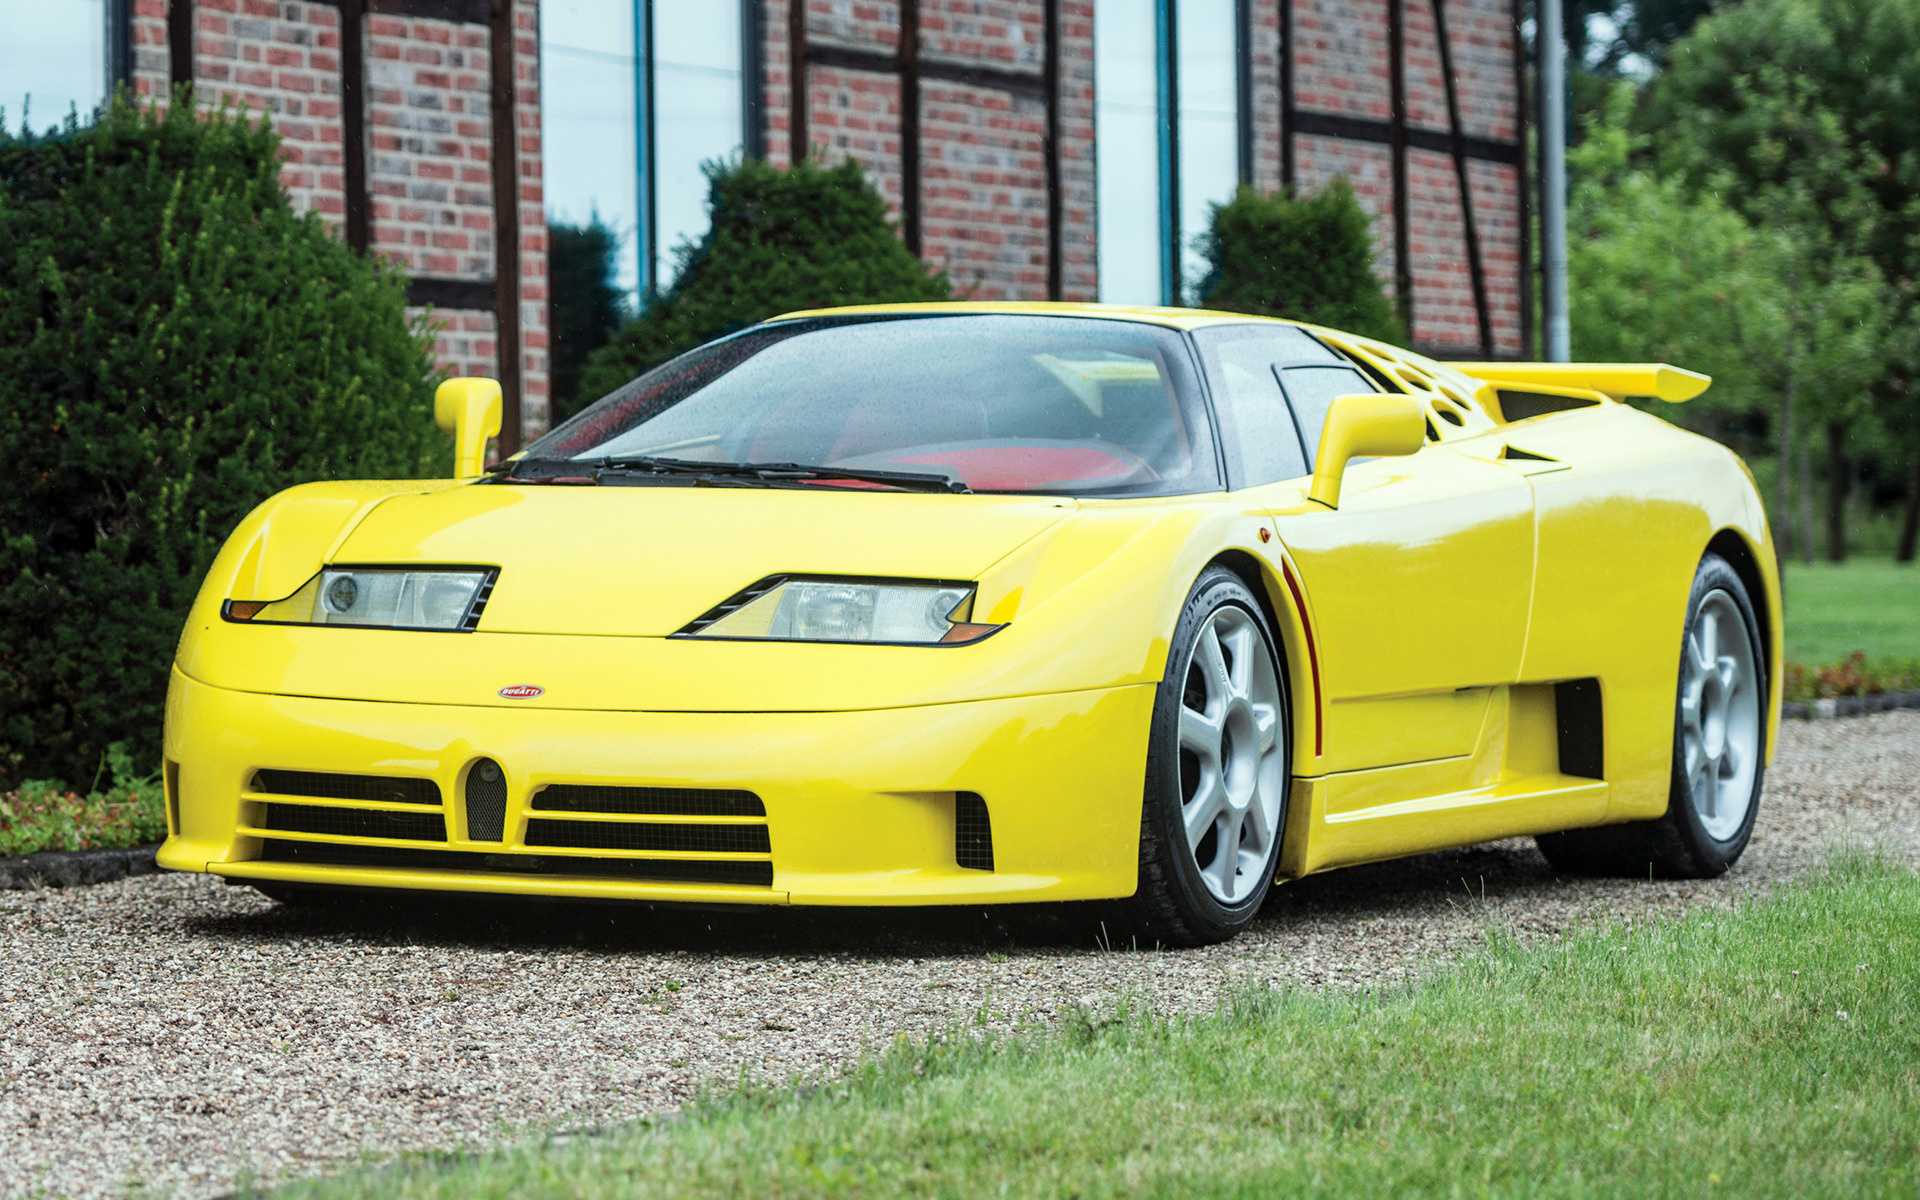 Bugatti EB110 SS (1992) Wallpapers and HD Images - Car Pixel